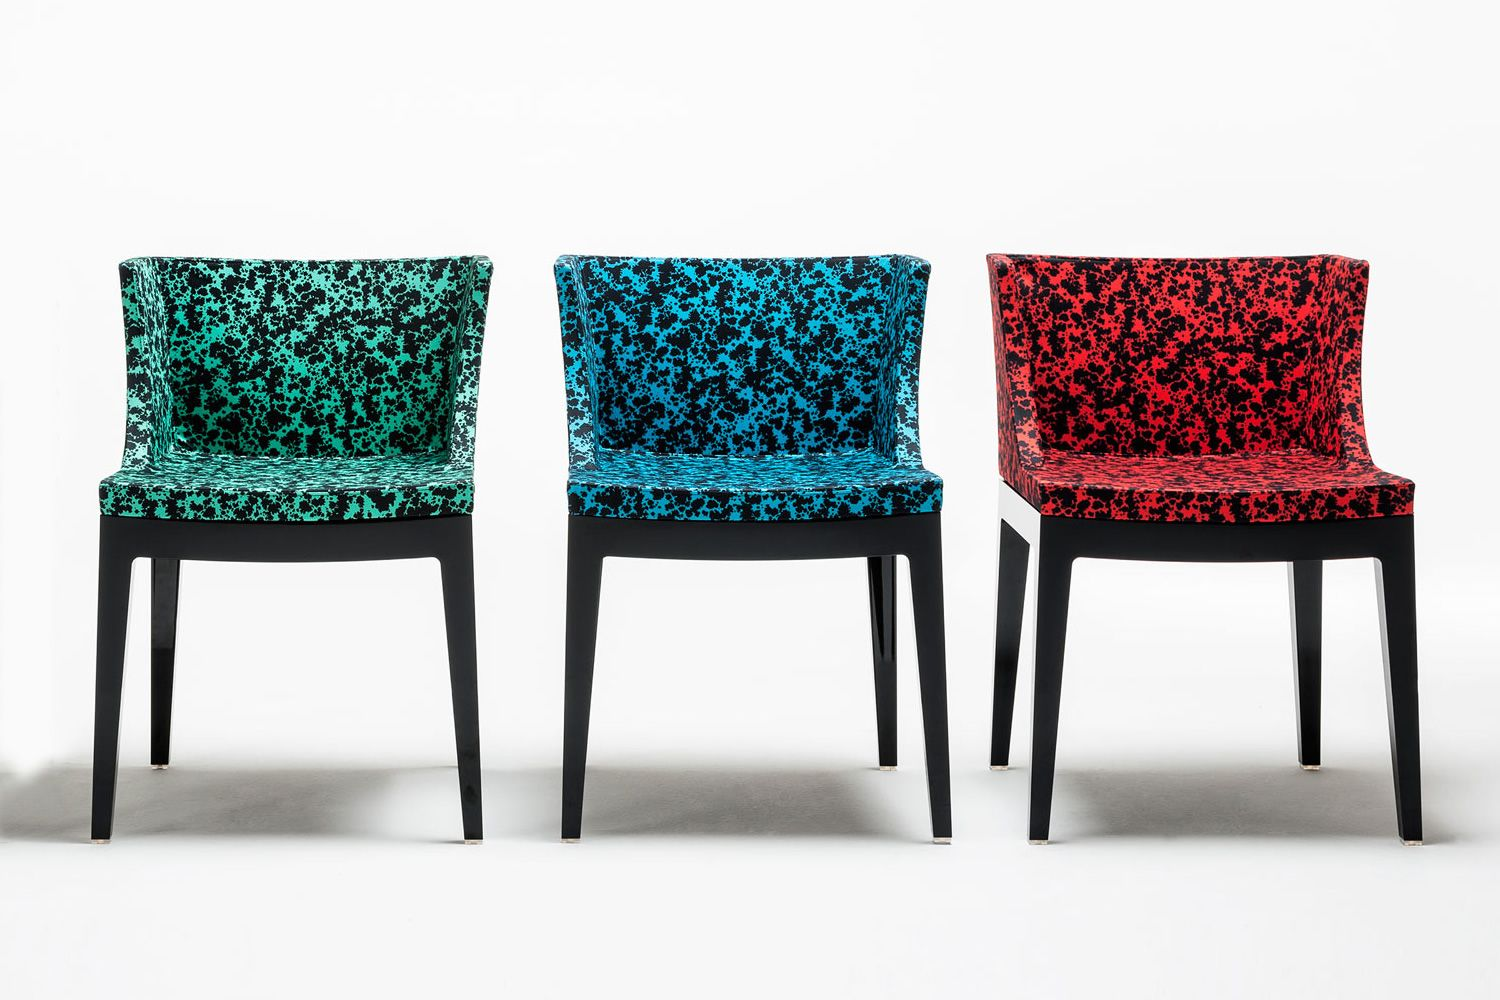 Mademoiselle Memphis by Sottsass: Design small armchair